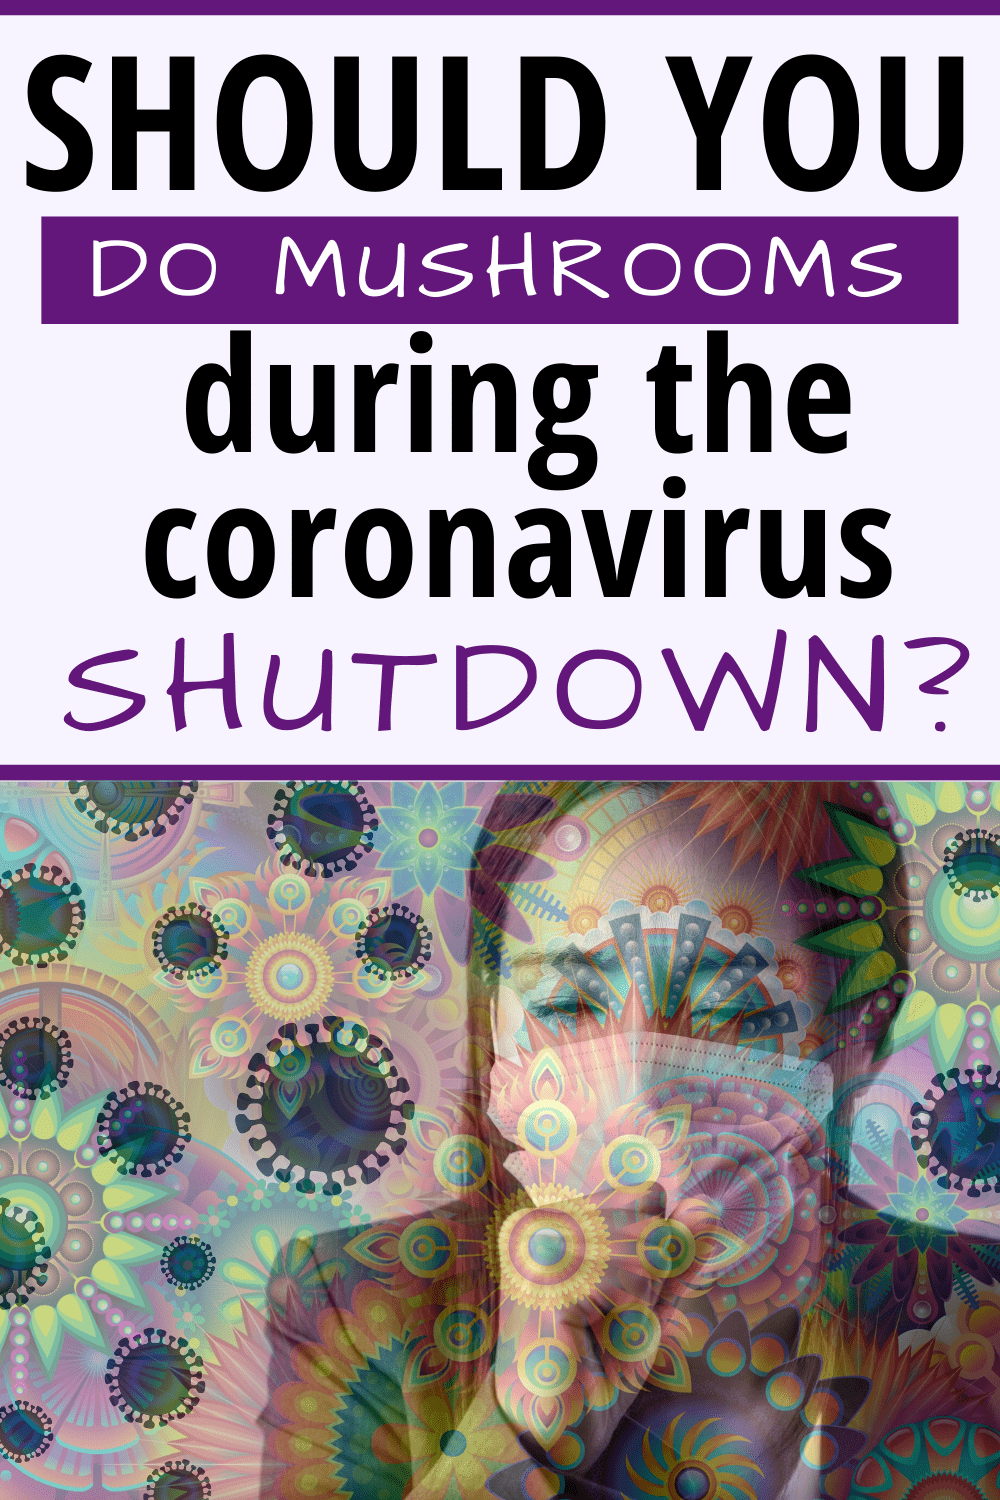 Should You Do Mushrooms During The Coronavirus Shutdown?